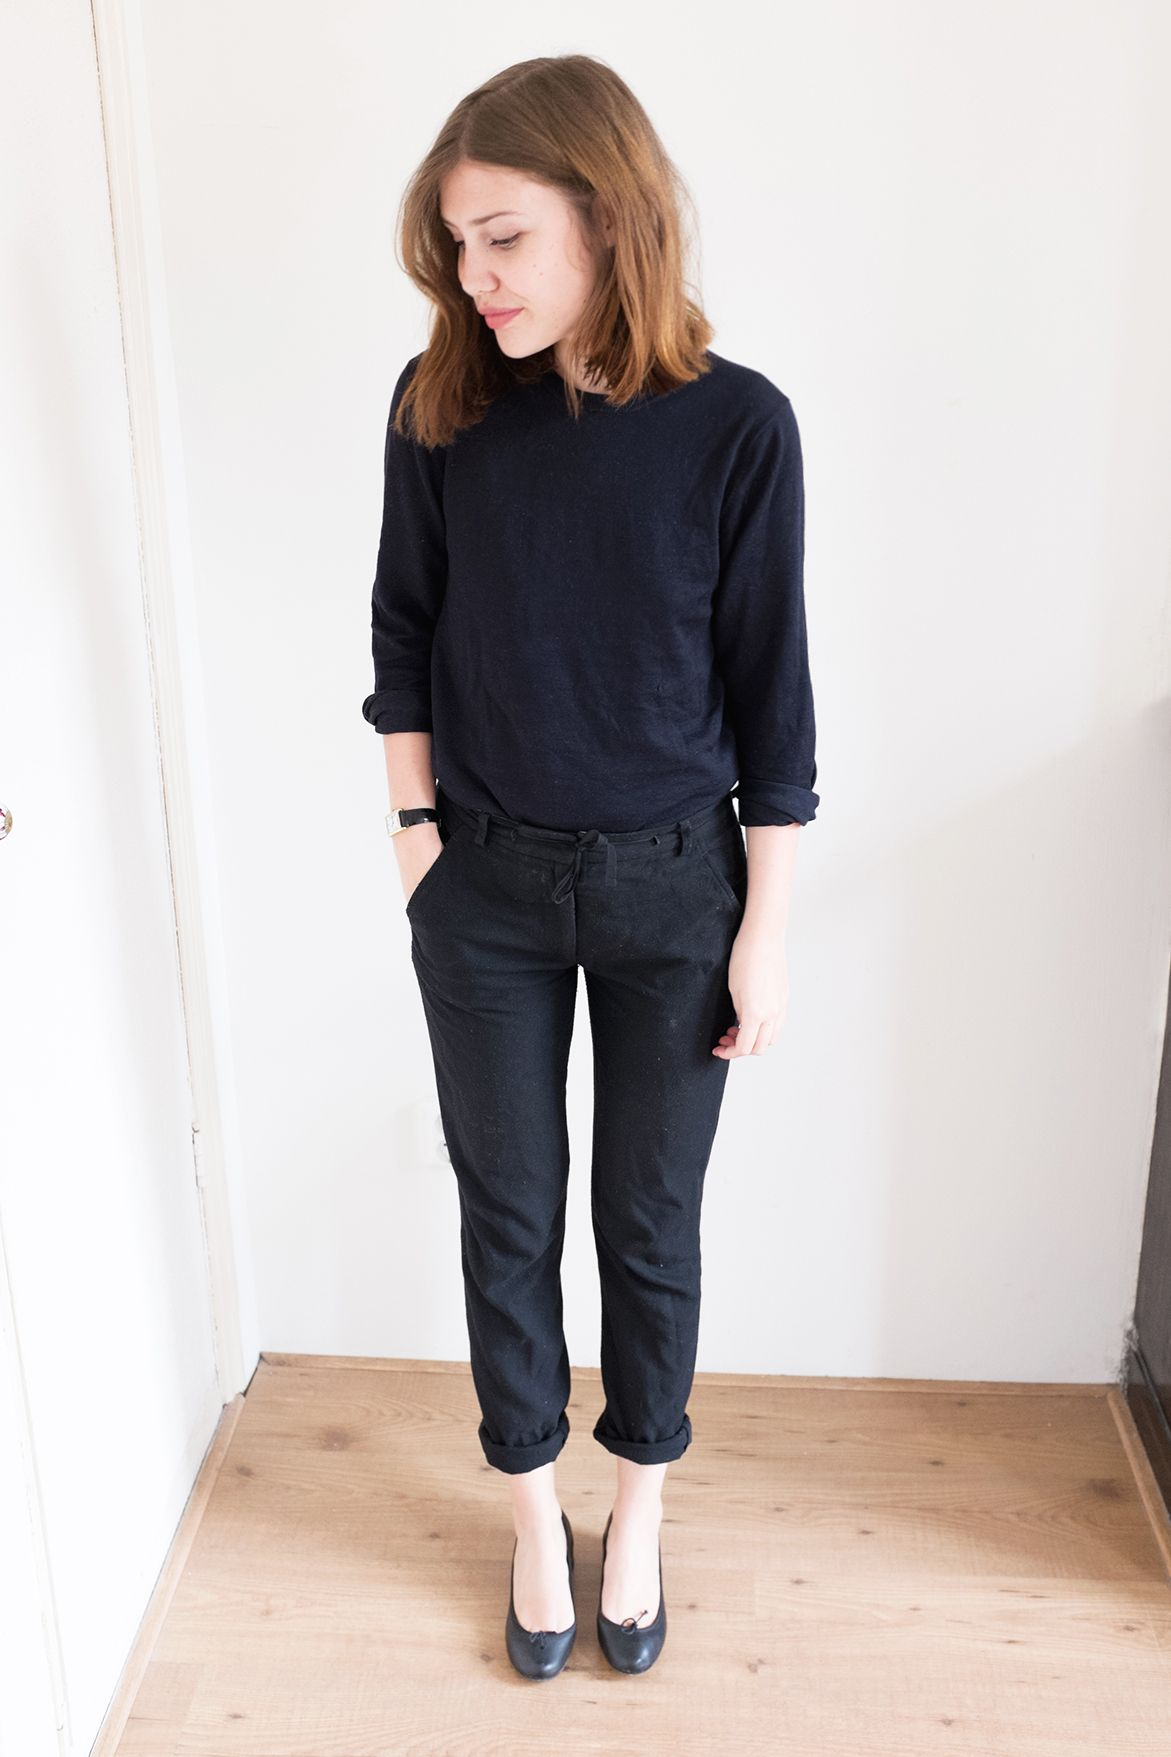 c991bcb07739 Isabel Marant Trousers Outfit on www.sartreuse.com